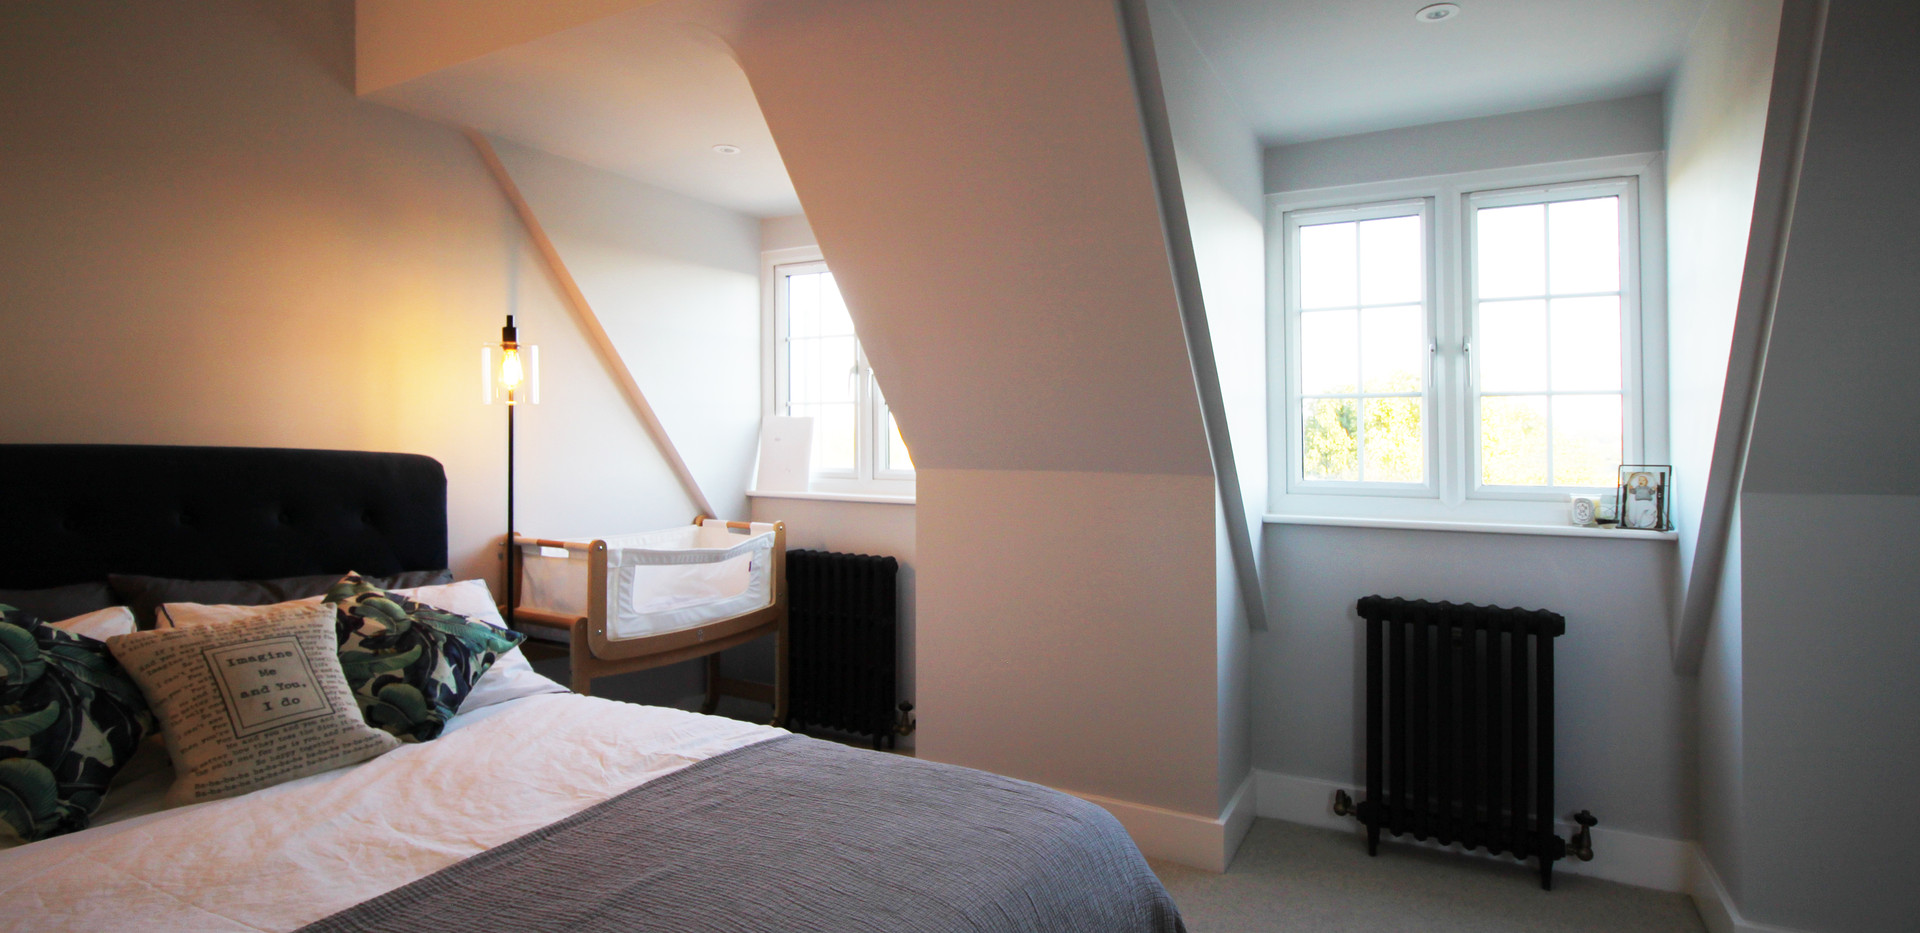 Master bedroom loft conversion with dormer windows